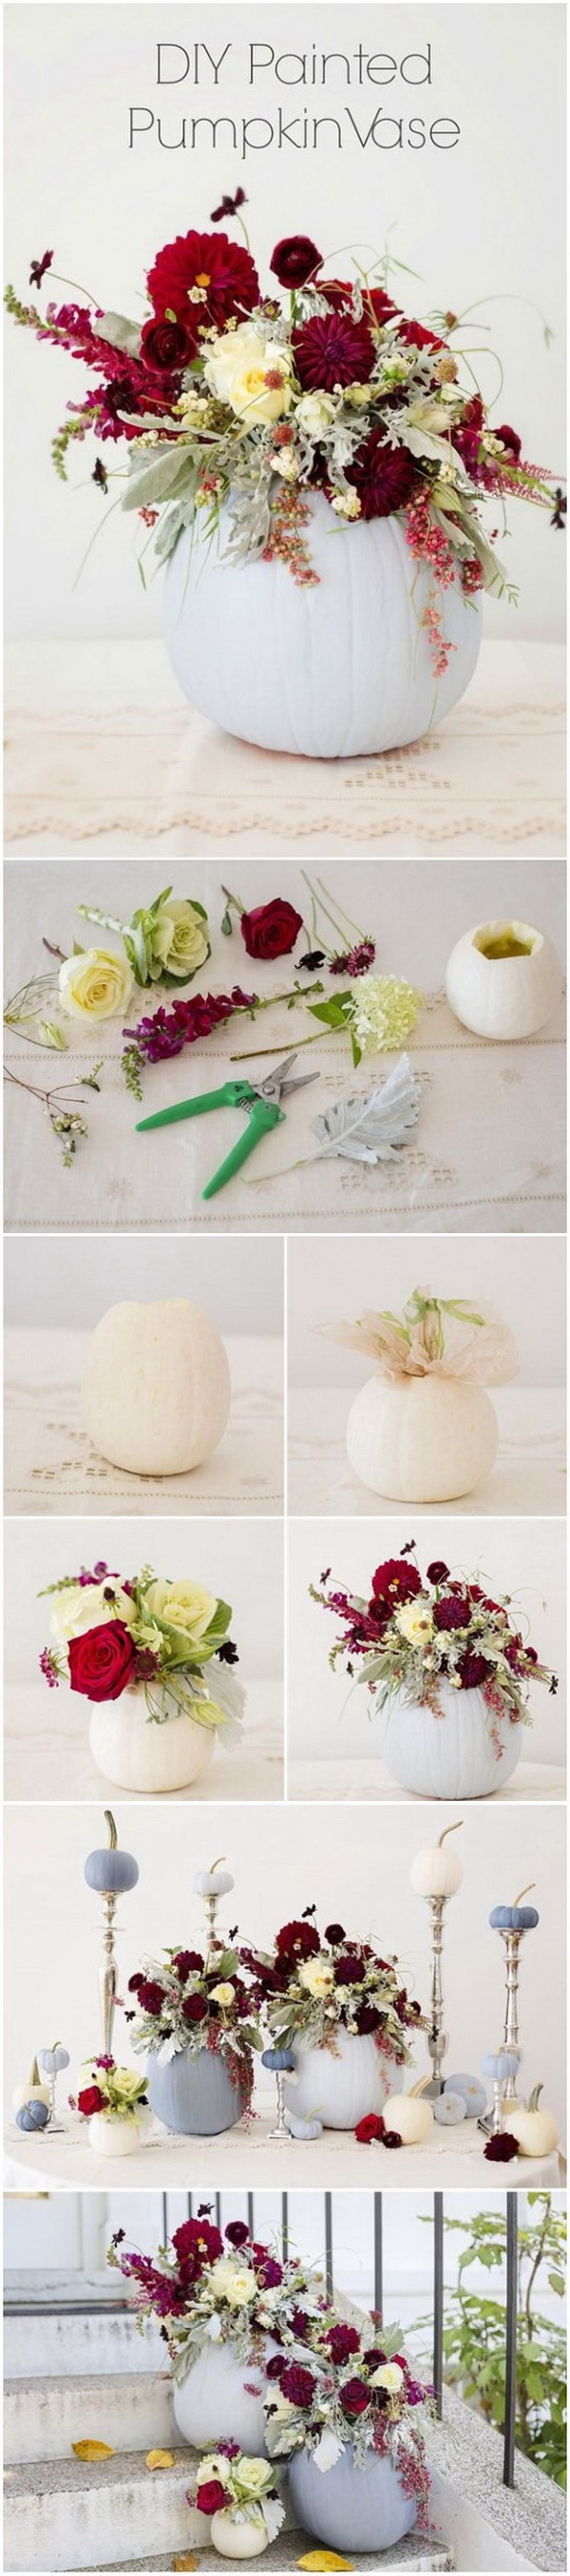 DIY Painted Pumpkin Wedding Vase. Make use of pumpkins as baskets and centerpieces for autumn weddings. Make this dusty blue pumpkin flower vase with several steps! It is great for fall weedding table venterpiece!